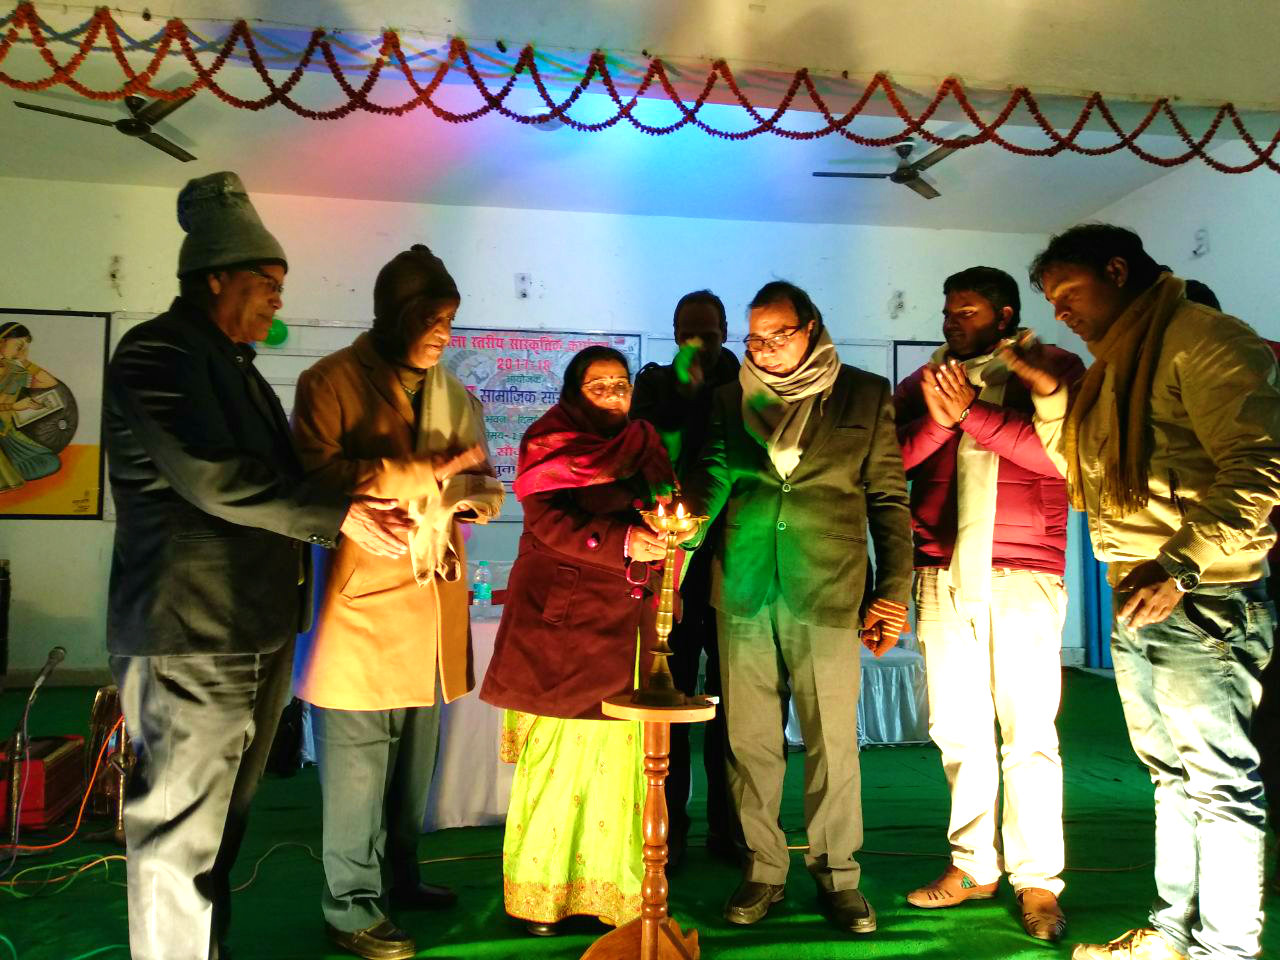 Educationist Dr.Madhepuri along with Zila Parishad President Smt.Manju Devi, inaugurating a cultural program organised by Nat-Ang Social-Cultural Club & NYC at Bhupendra Kala Bhawan , Madhepura.